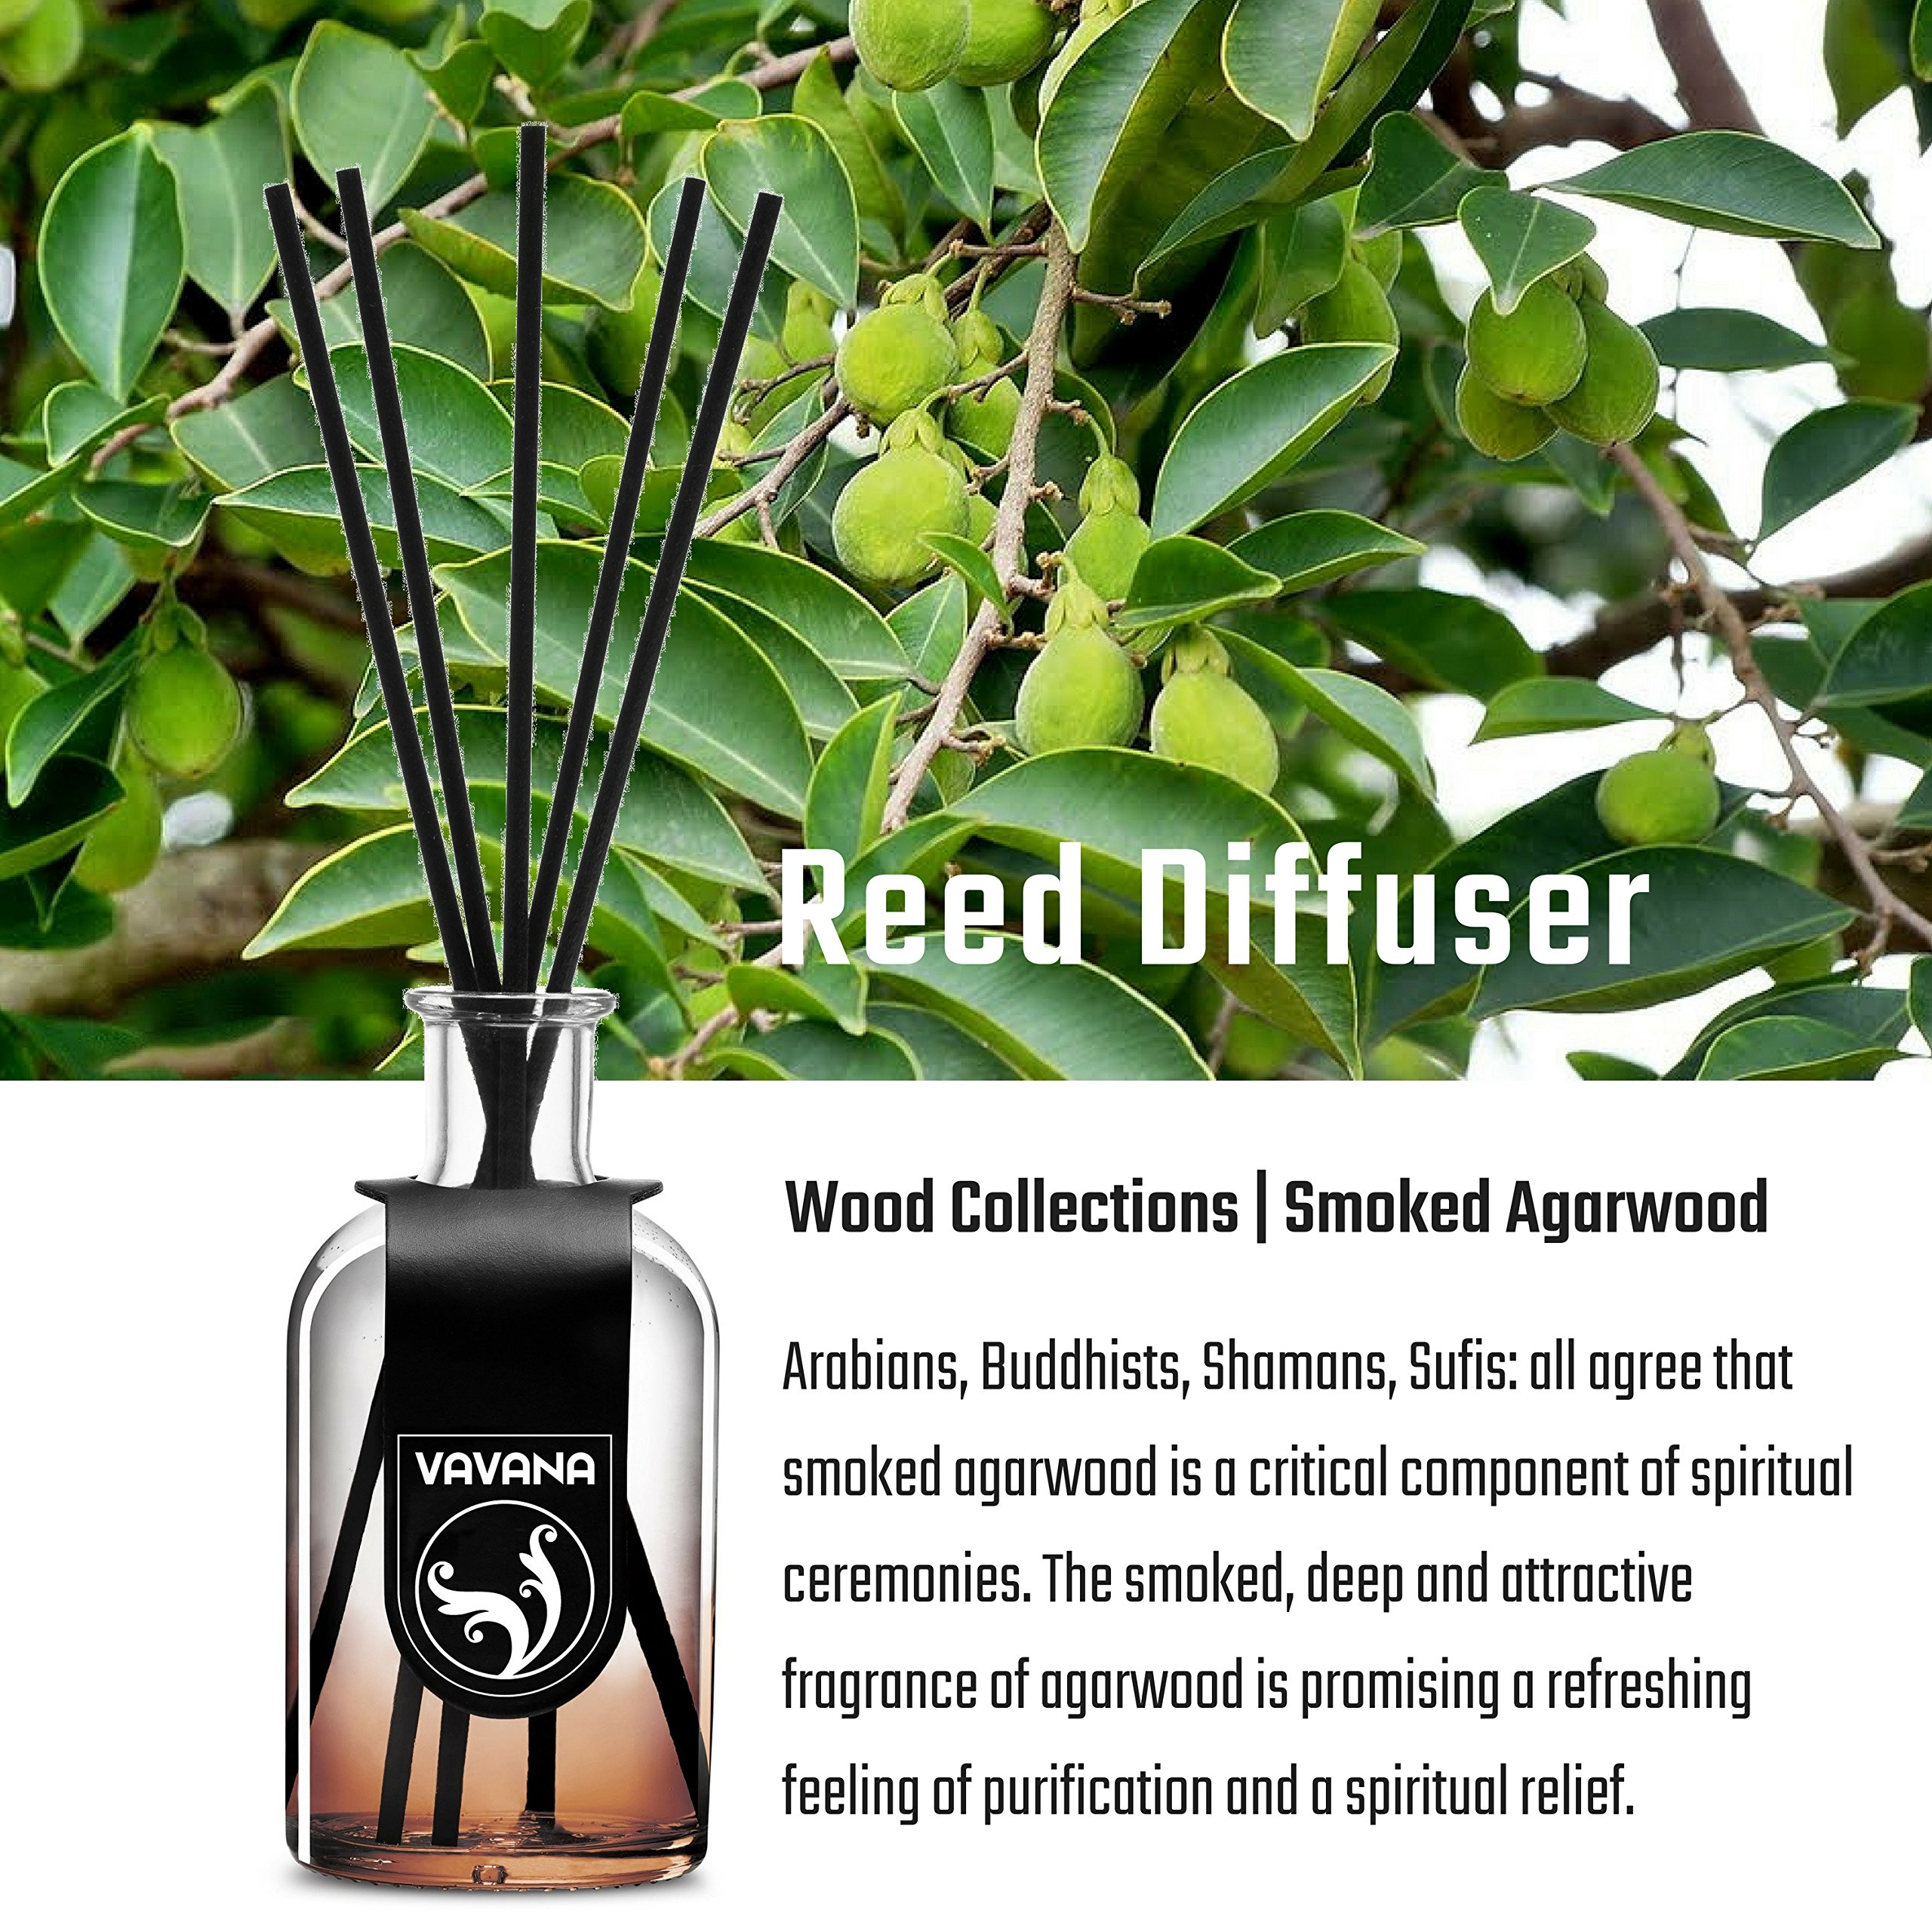 VAVANA Aromatherapy Diffuser Sticks   Reed Diffuser Set   Aromatic Home Fragrance Set   Essential Oil Diffuser Sticks, Made of Natural Scented Oils Blend   100 ML/3.4 OZ - 6 Pack (Smoked A.Wood) by vavana (Image #8)